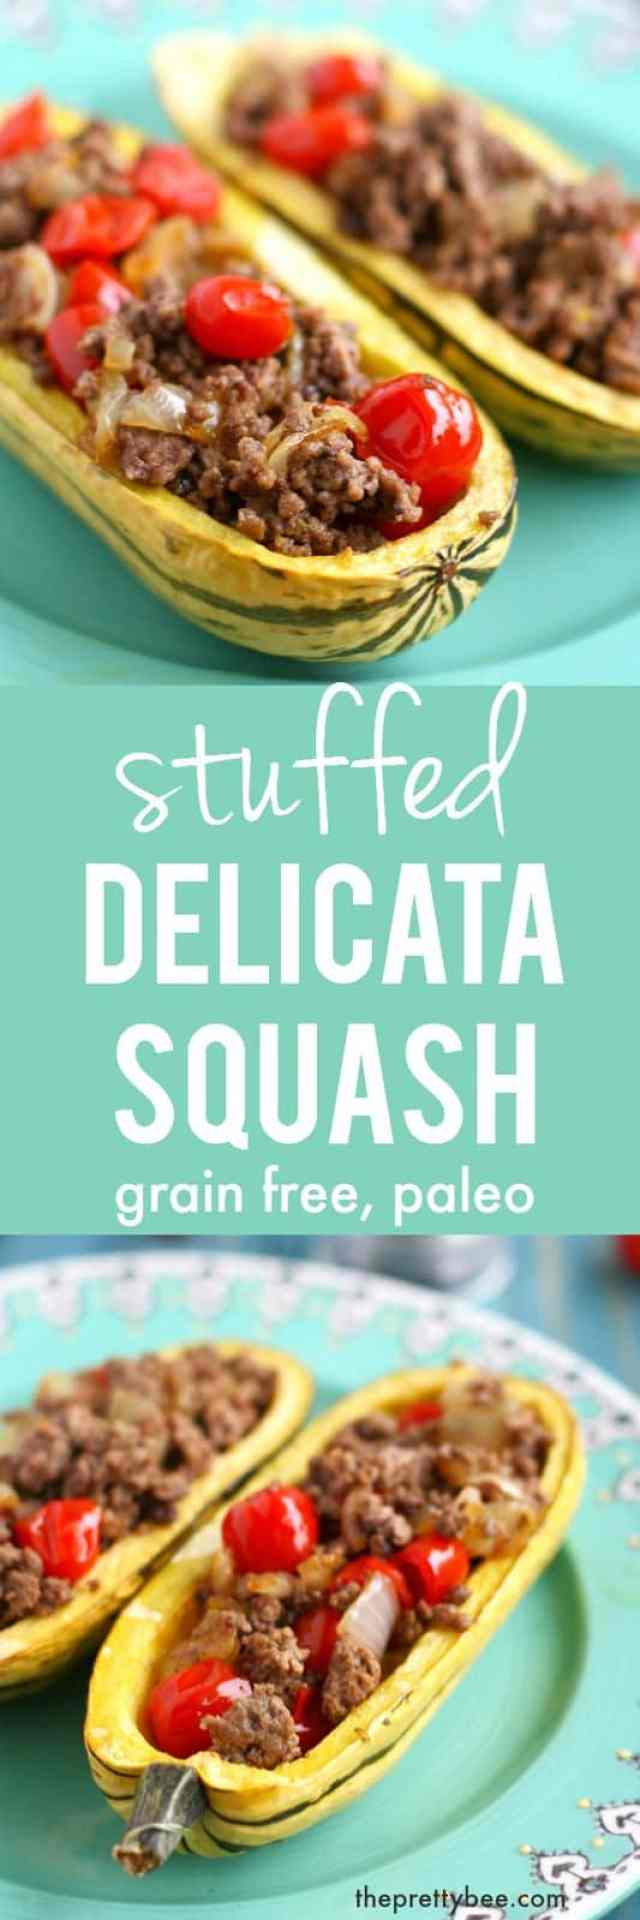 This stuffed delicata squash recipe is gluten free, grain free, and paleo friendly! Delicious and healthy.